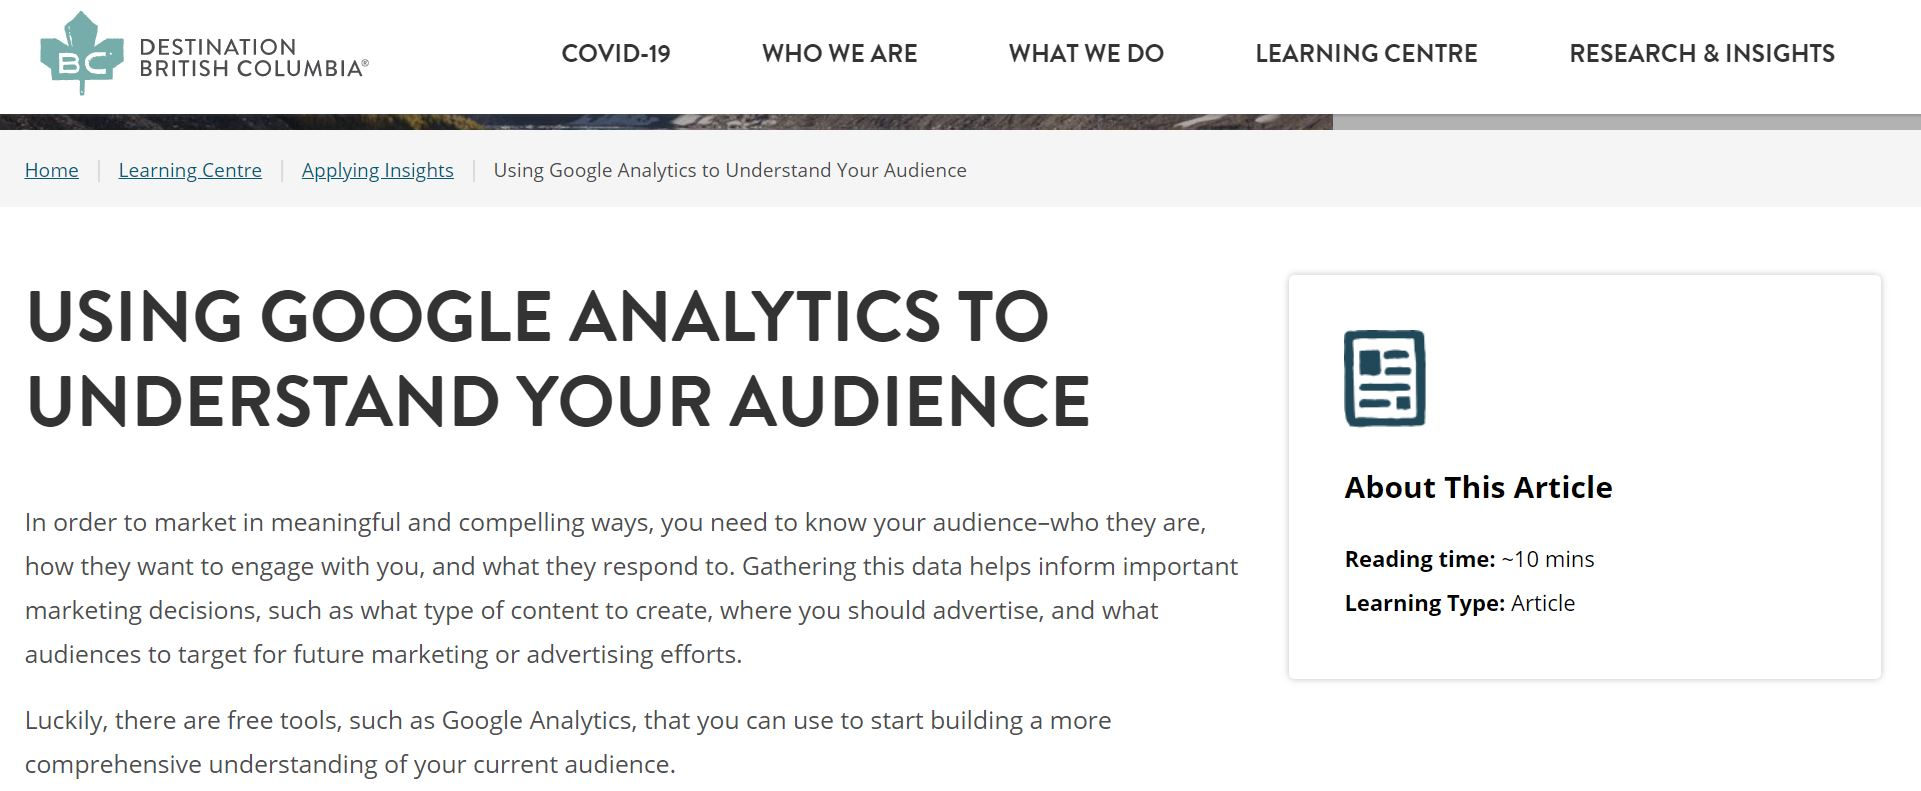 Using Google Analytics to Understand Your Audience